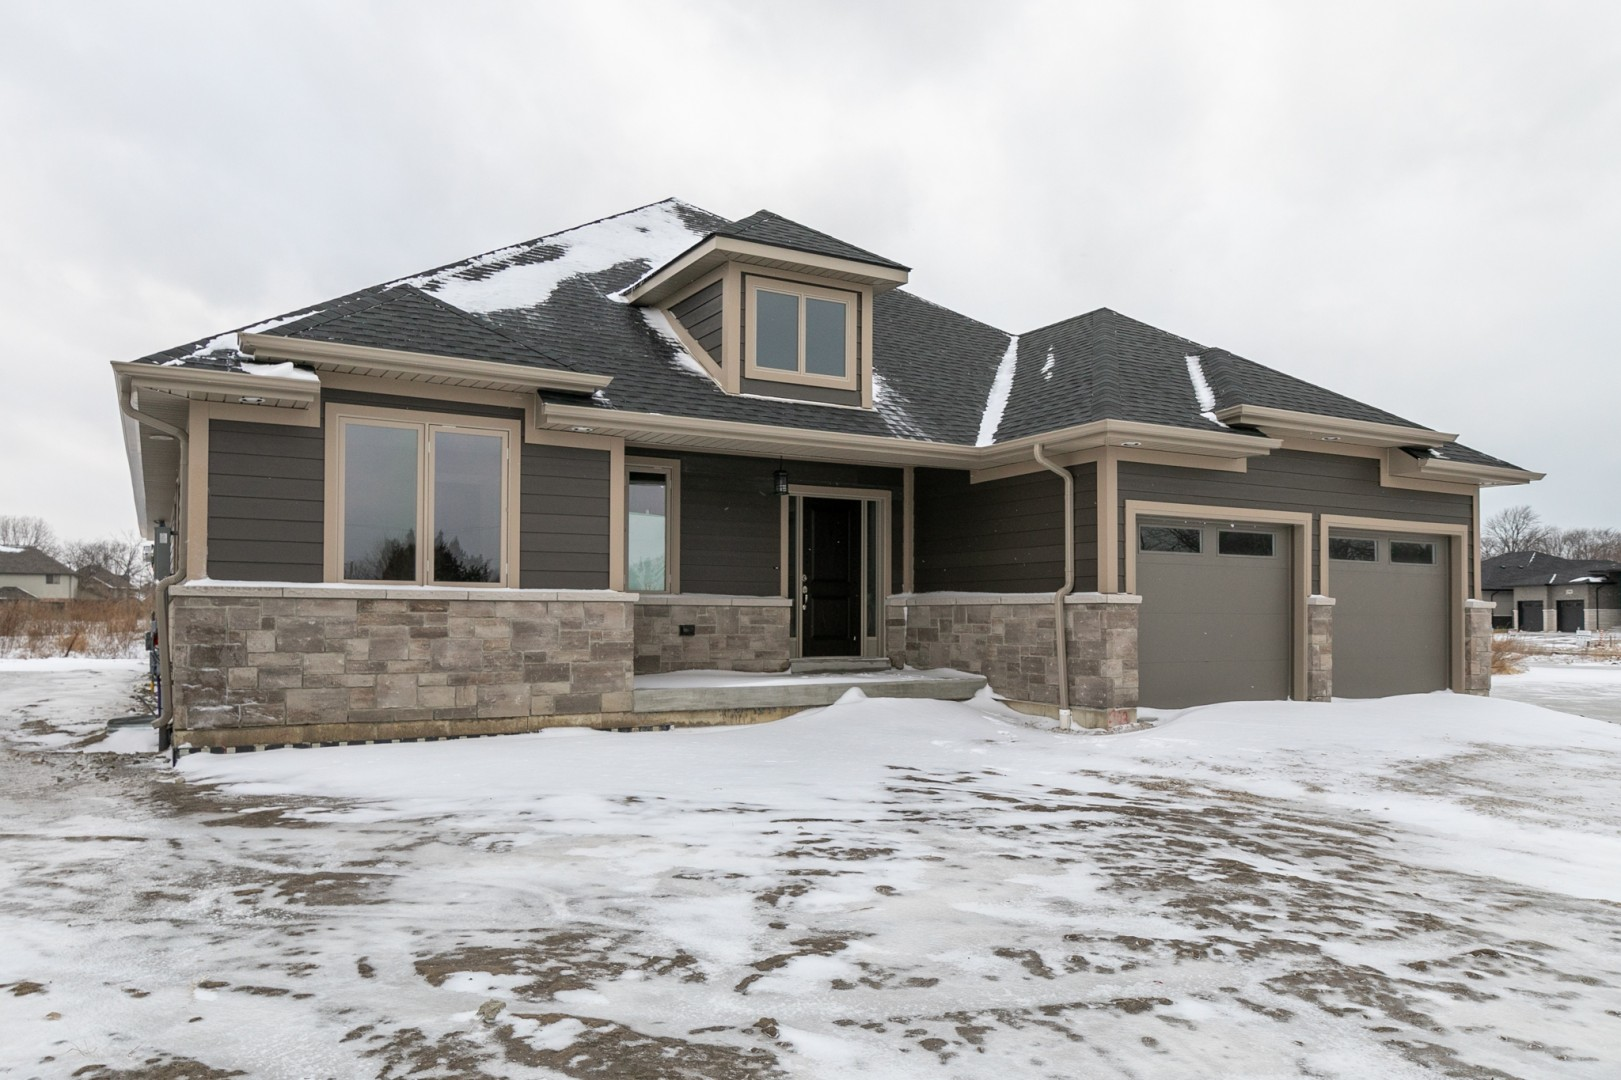 203 Rafih - Ranch   $714,900 Open house Sunday March 17 1-3pm